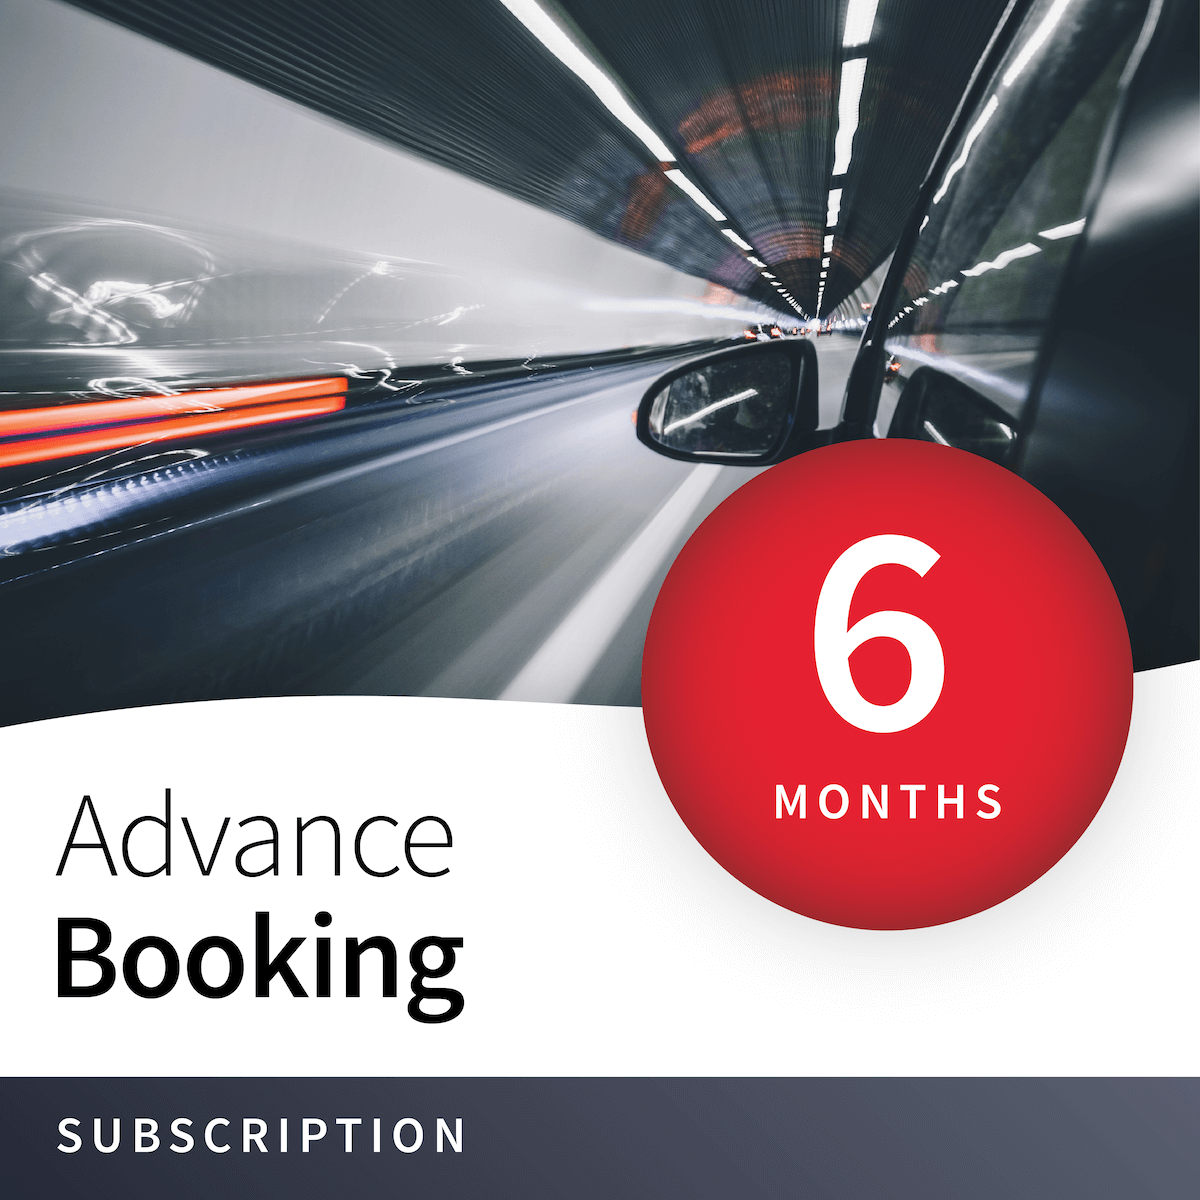 Priority Advance Booking - 6 Months 17